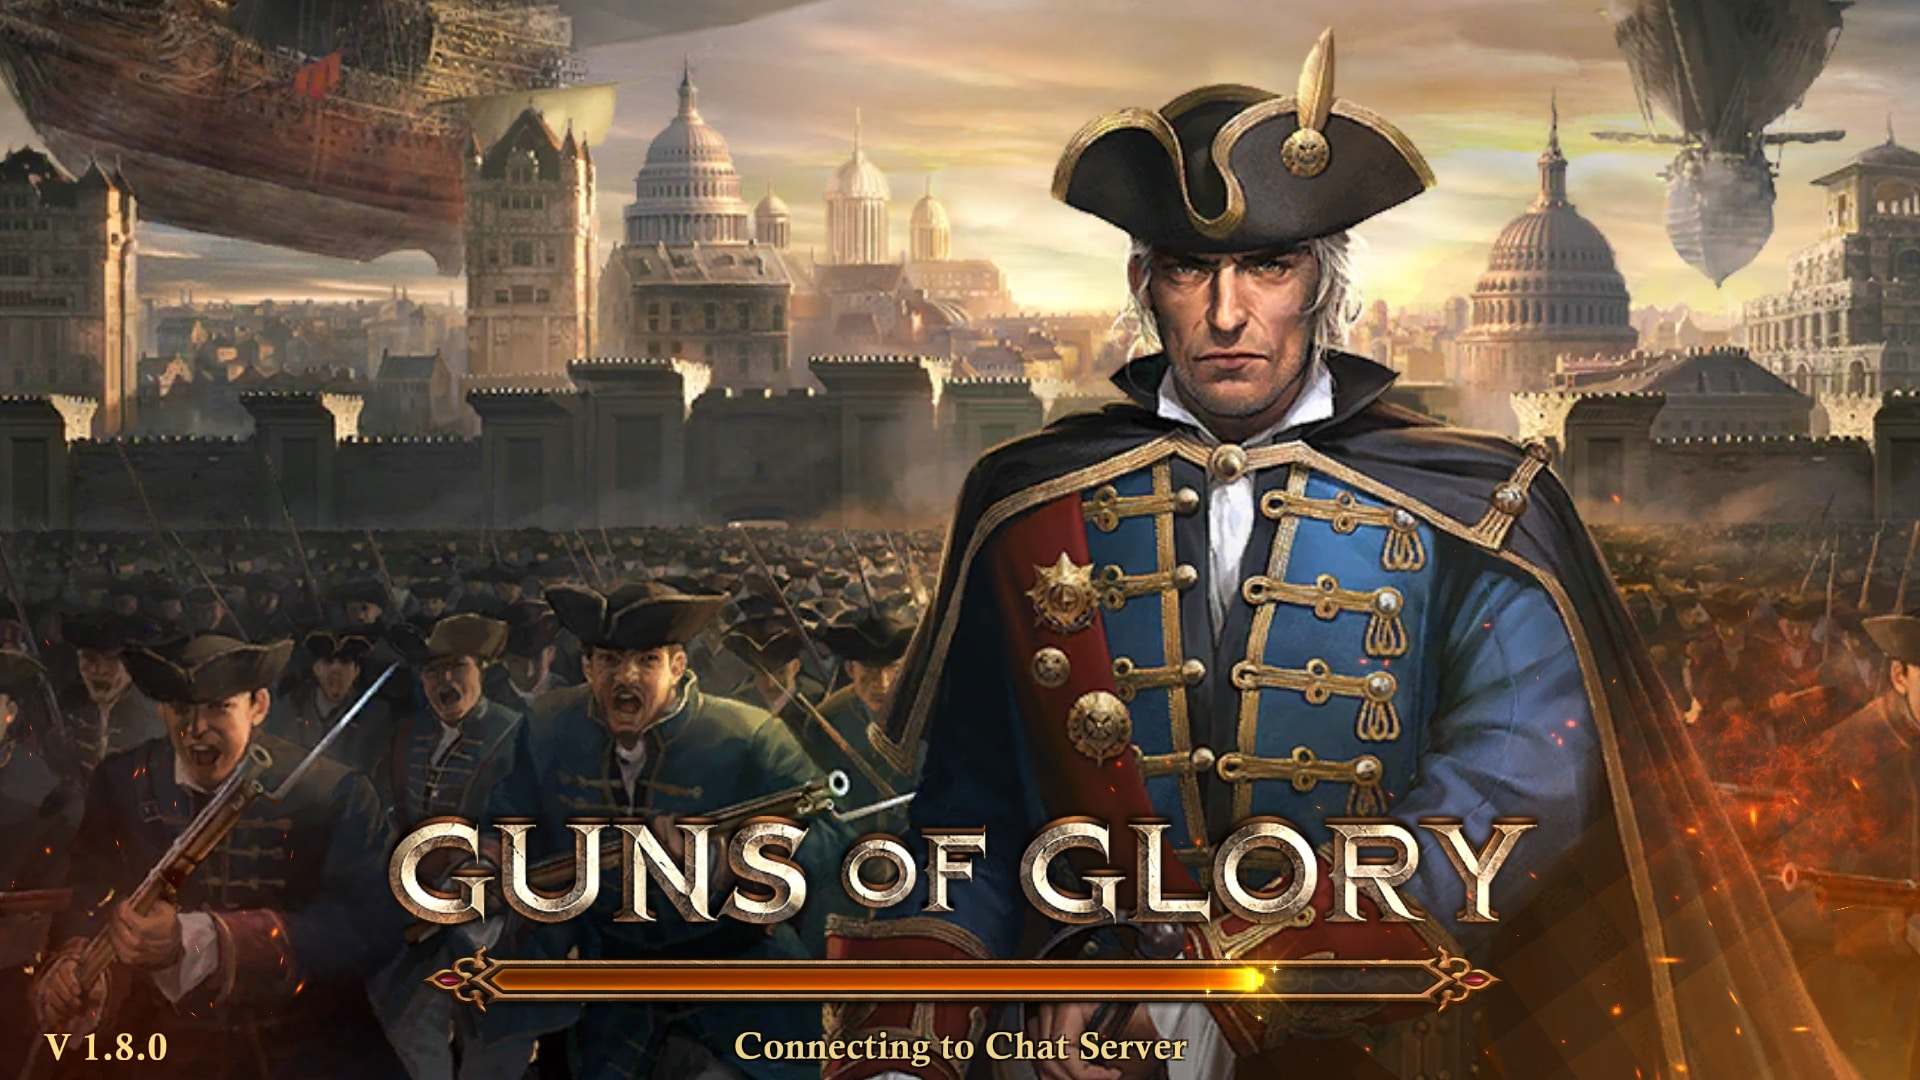 Download Guns of Glory APK- For Android and iOS 7